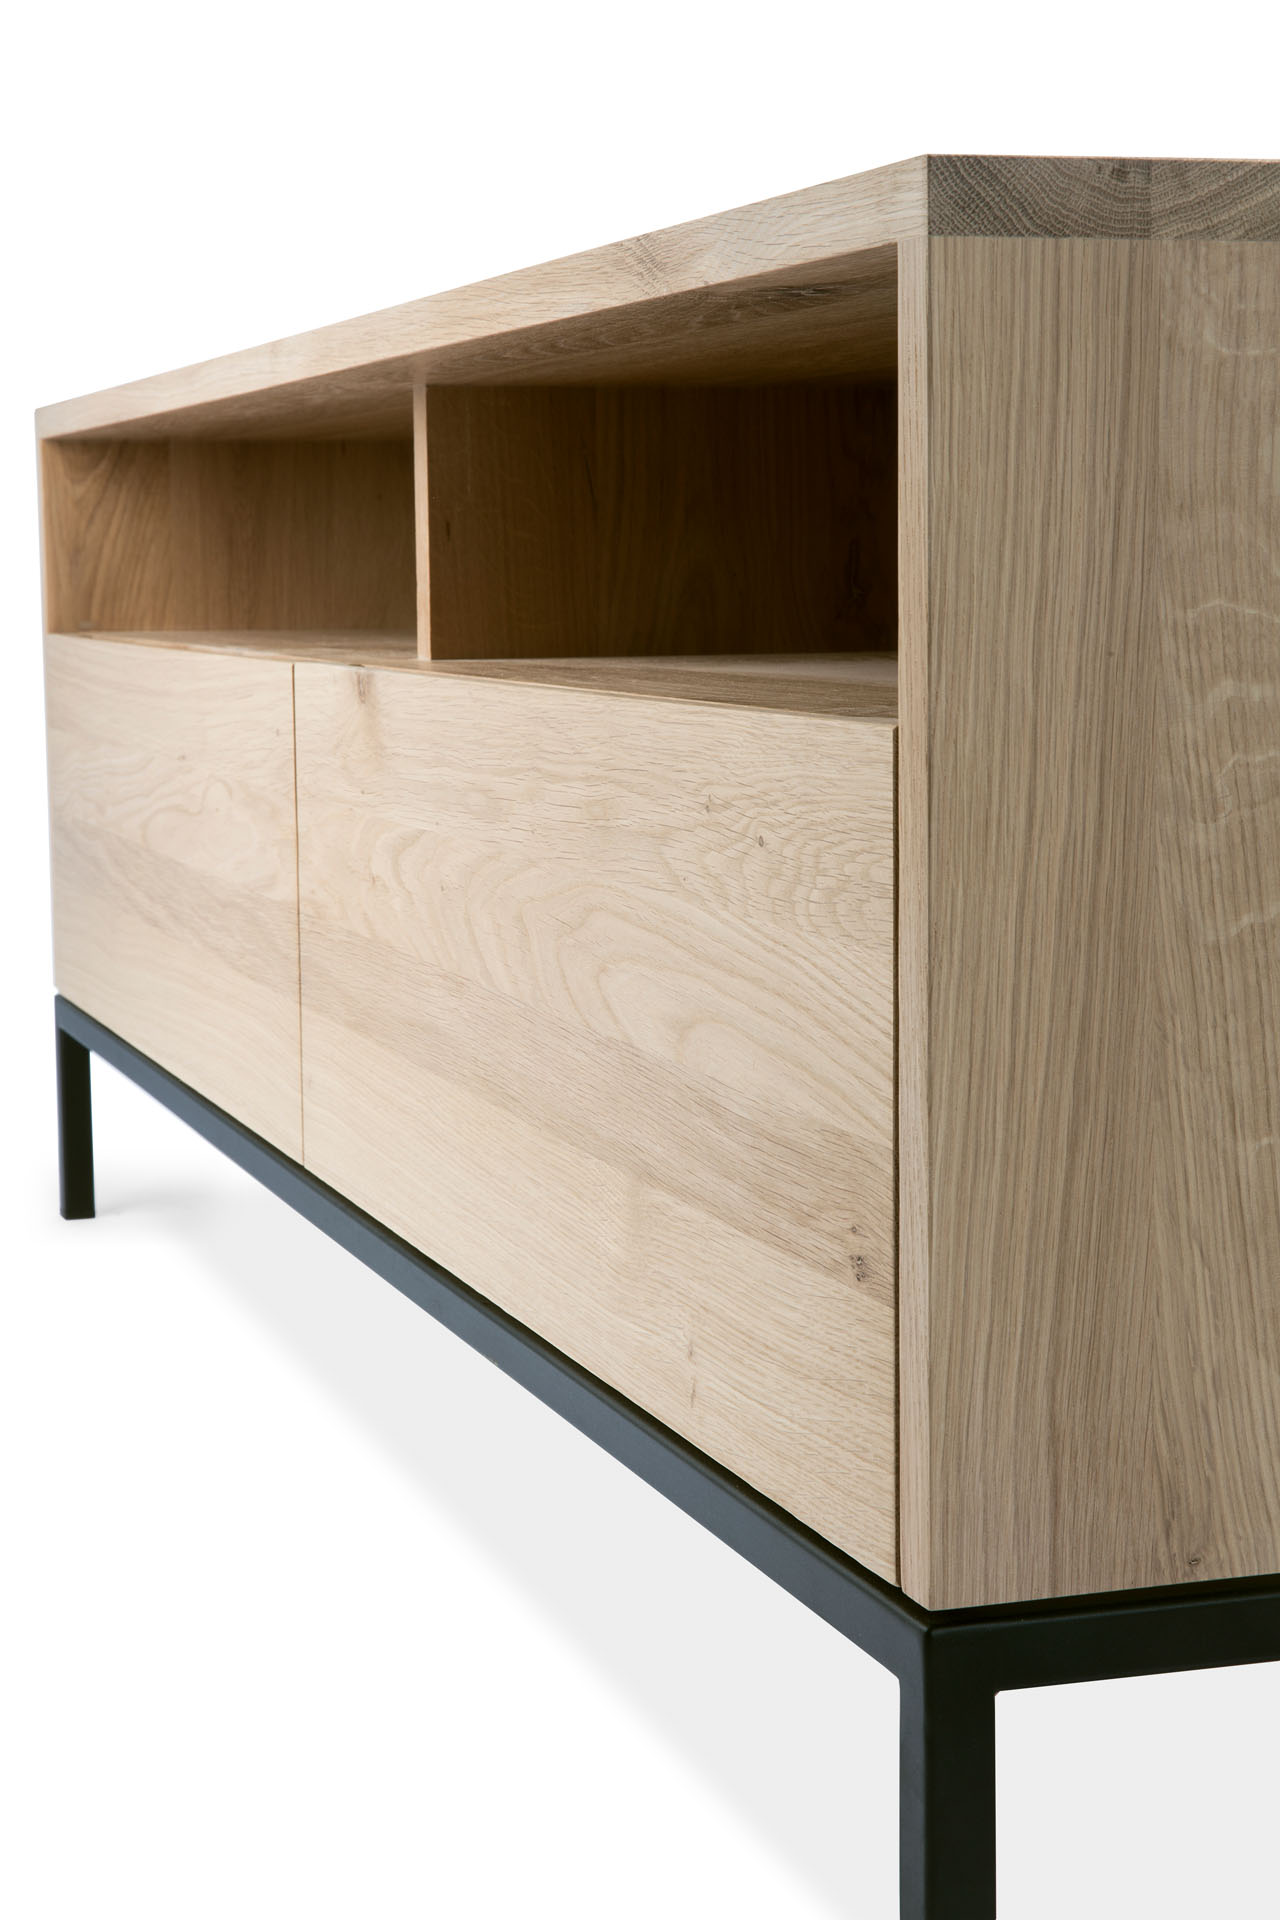 TGE-051118-Oak-Ligna-TV-cupboard-2-drawers-black-metal-legs-140x45x51_det.jpg